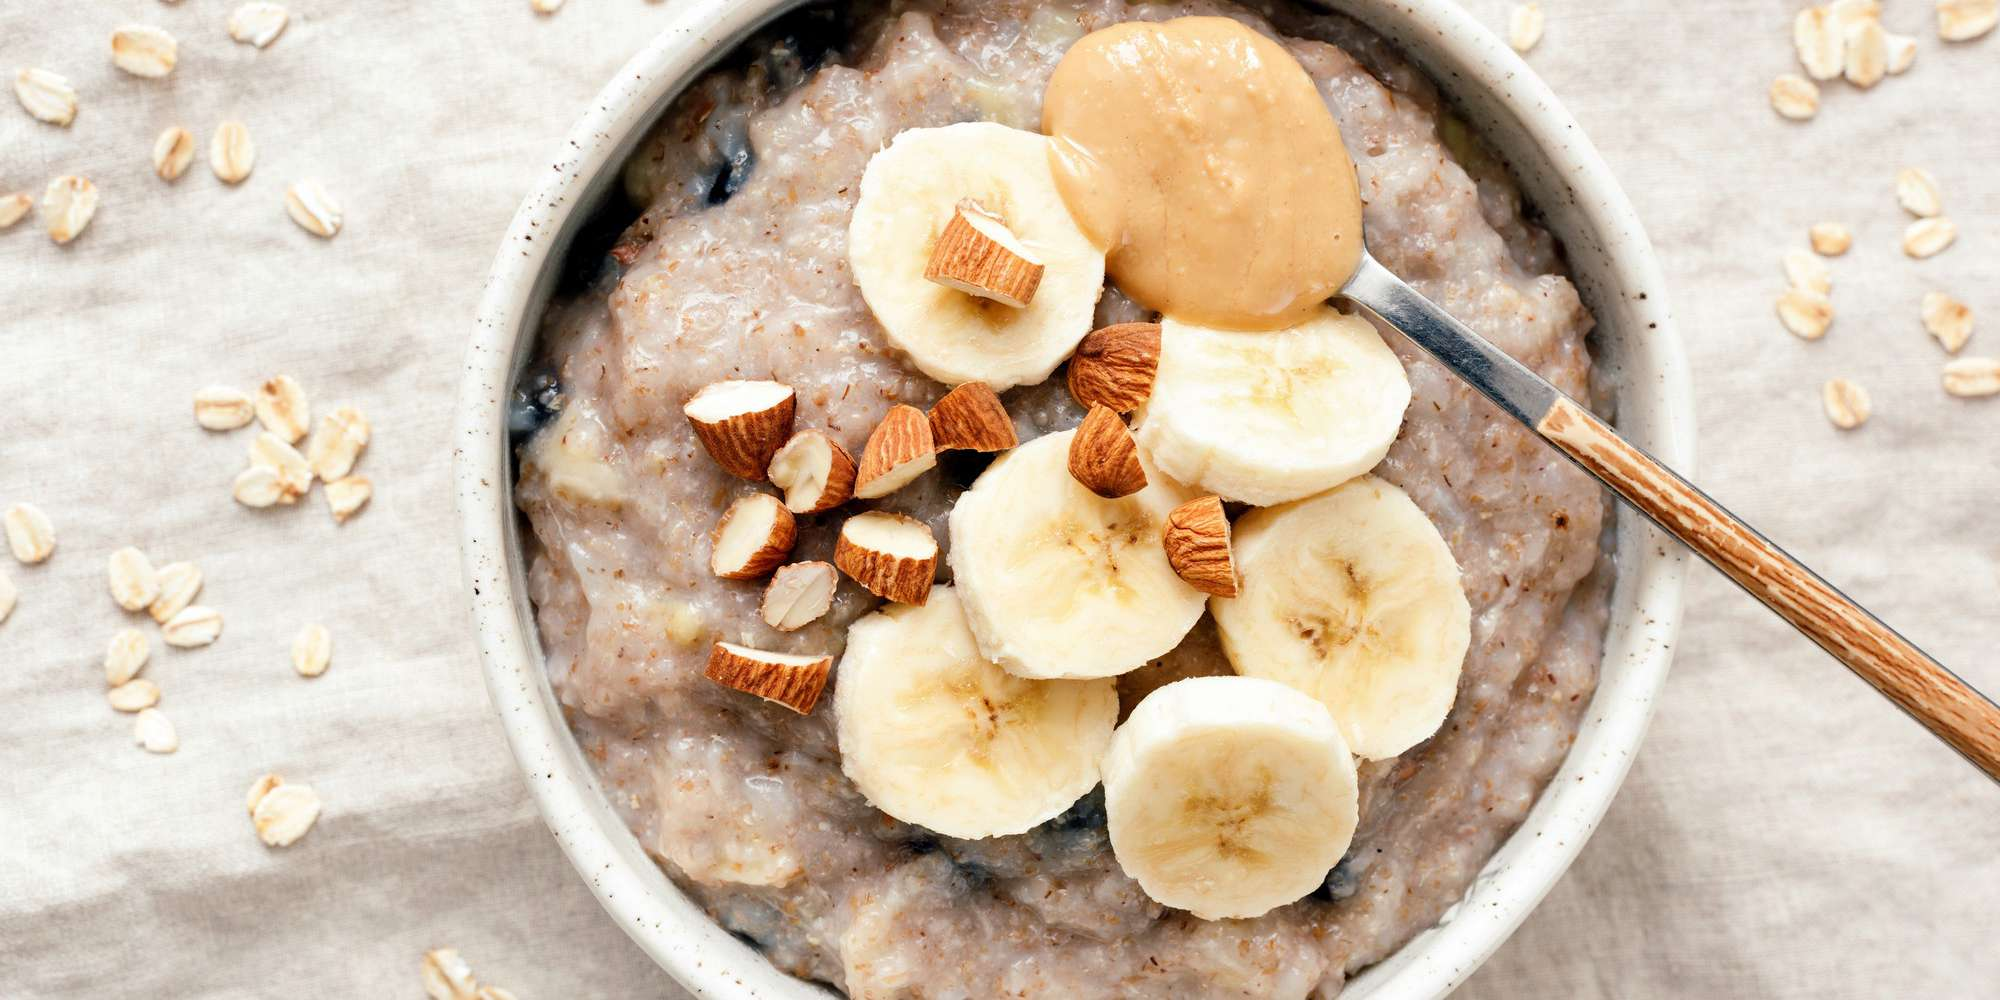 Apple Banana Peanut Butter & Honey Oatmeal